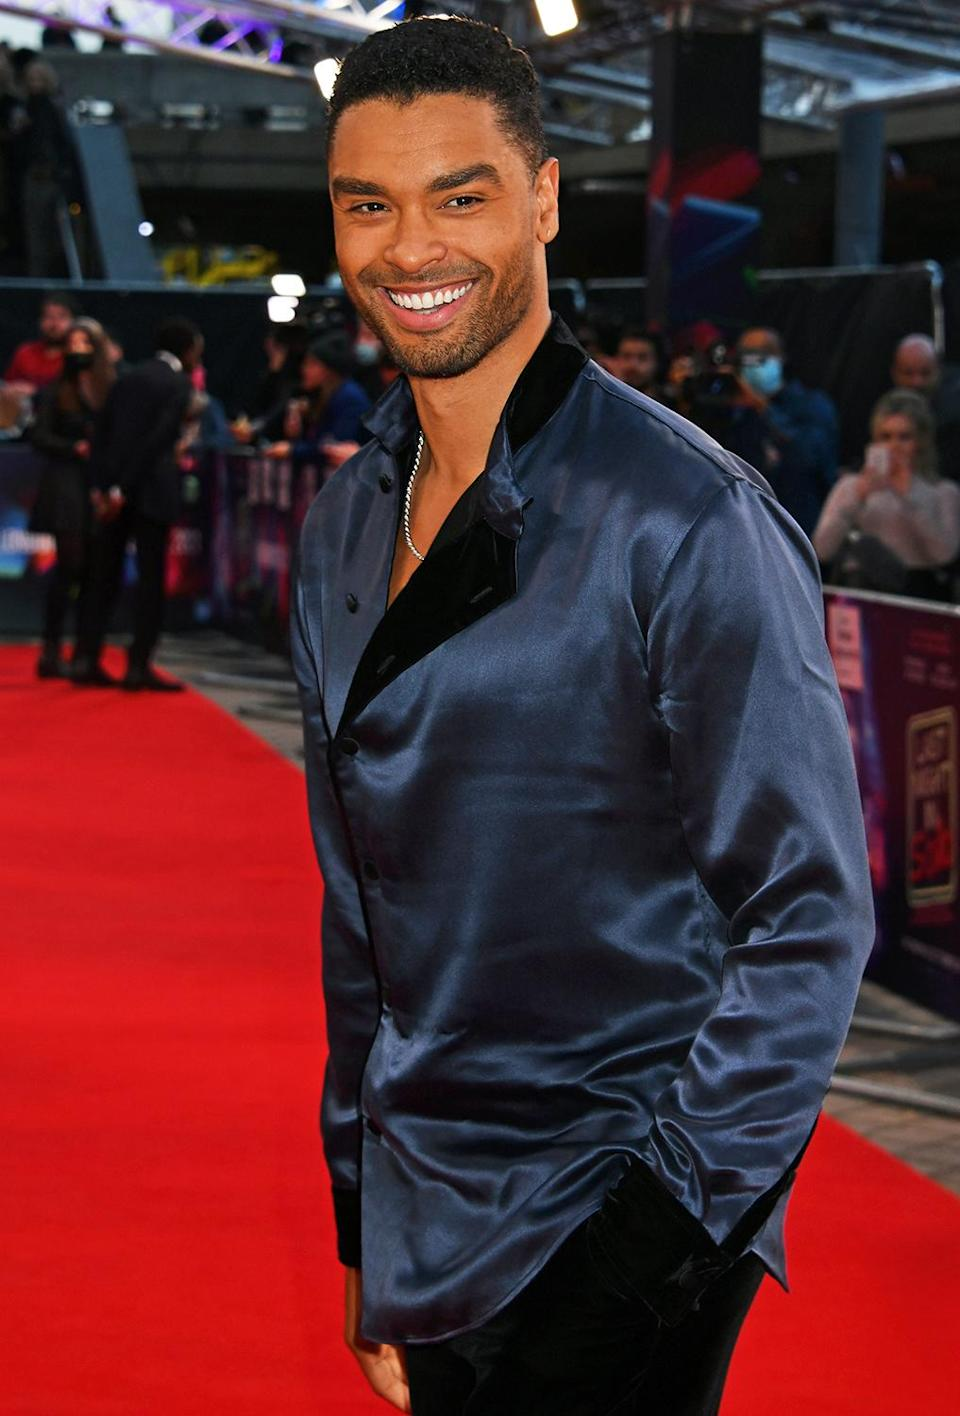 <p>Regé-Jean Page looks handsome in blue while attending the premiere of <em>Last Night in Soho</em> at the London Film Festival on Oct. 9.</p>